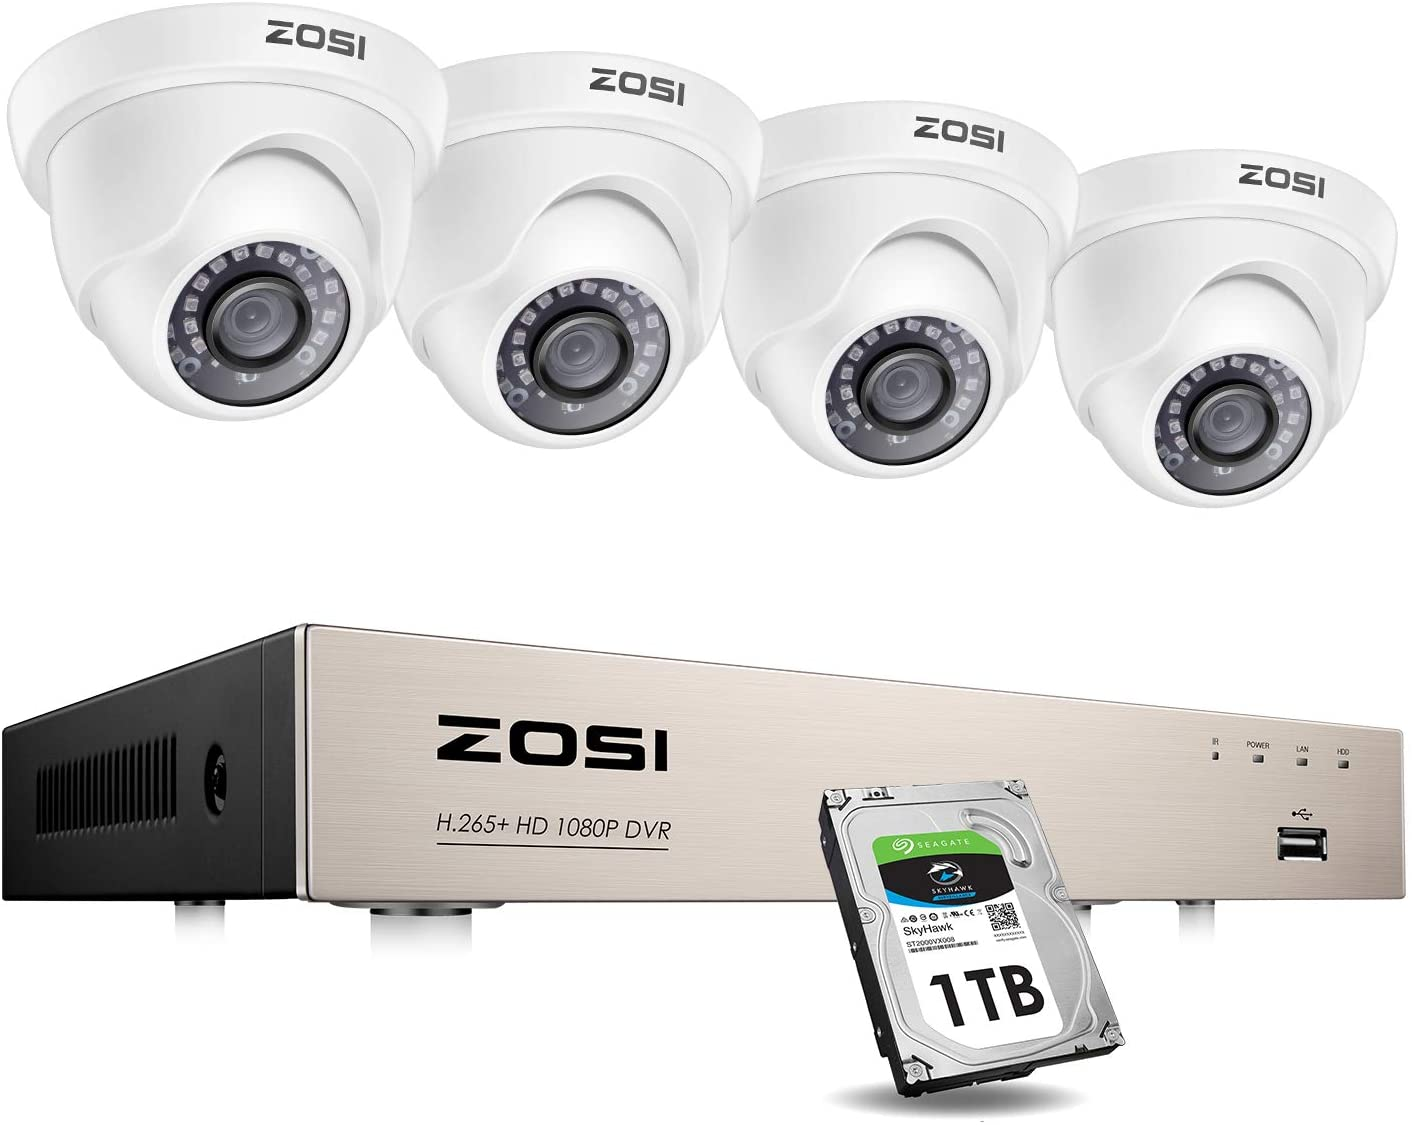 ZOSI Security Cameras System with 1TB Hard Drive,H.265+ 5MP Lite 8Channel HD-TVI DVR Recorder and 4pcs 1080P HD 1920TVL Indoor Outdoor Surveillance CCTV Dome Cameras with Night Vision,Remote Access